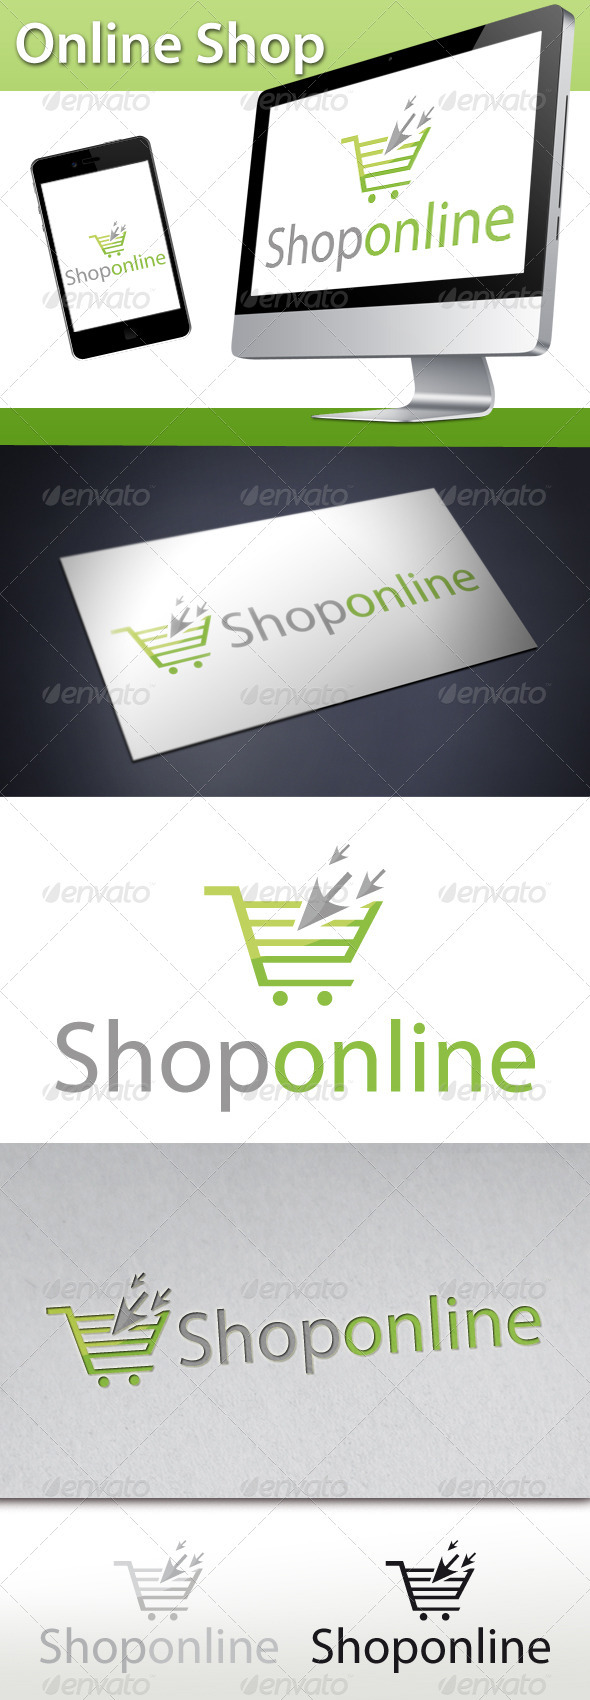 Online Shop Click Cart Logo - Objects Logo Templates